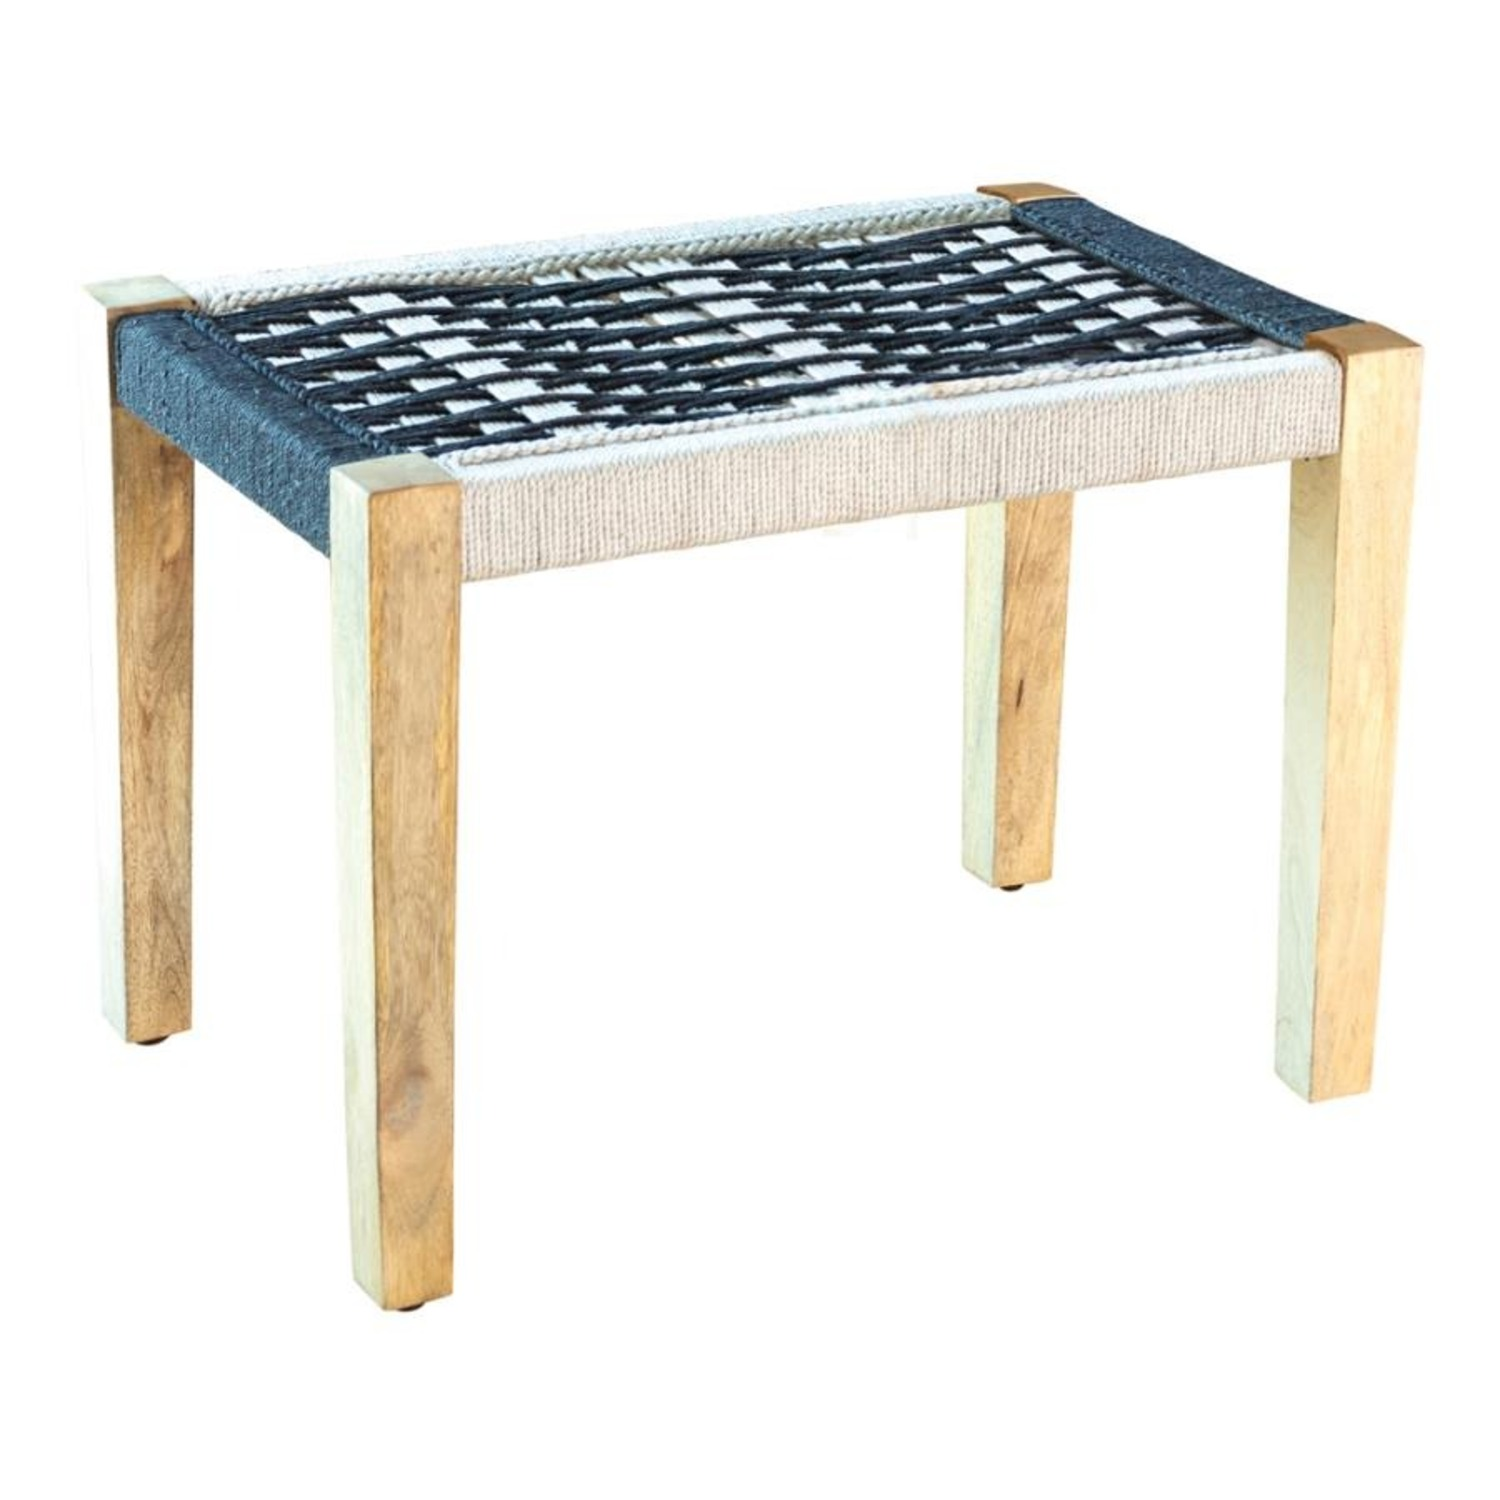 Bench In 2-Tone Black & White Woven Fabric - image-0